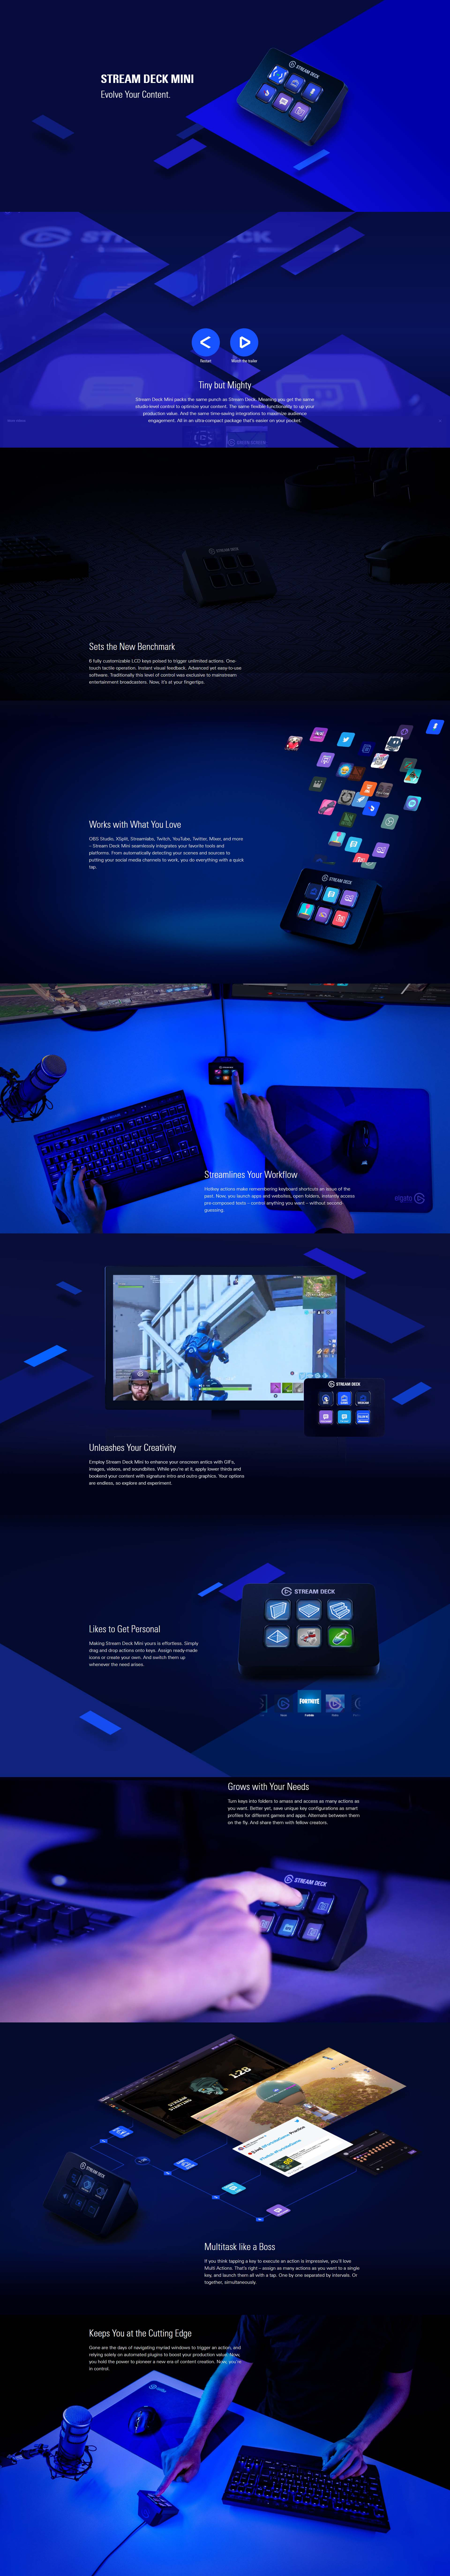 A large marketing image providing additional information about the product Elgato Stream Deck Mini - Additional alt info not provided